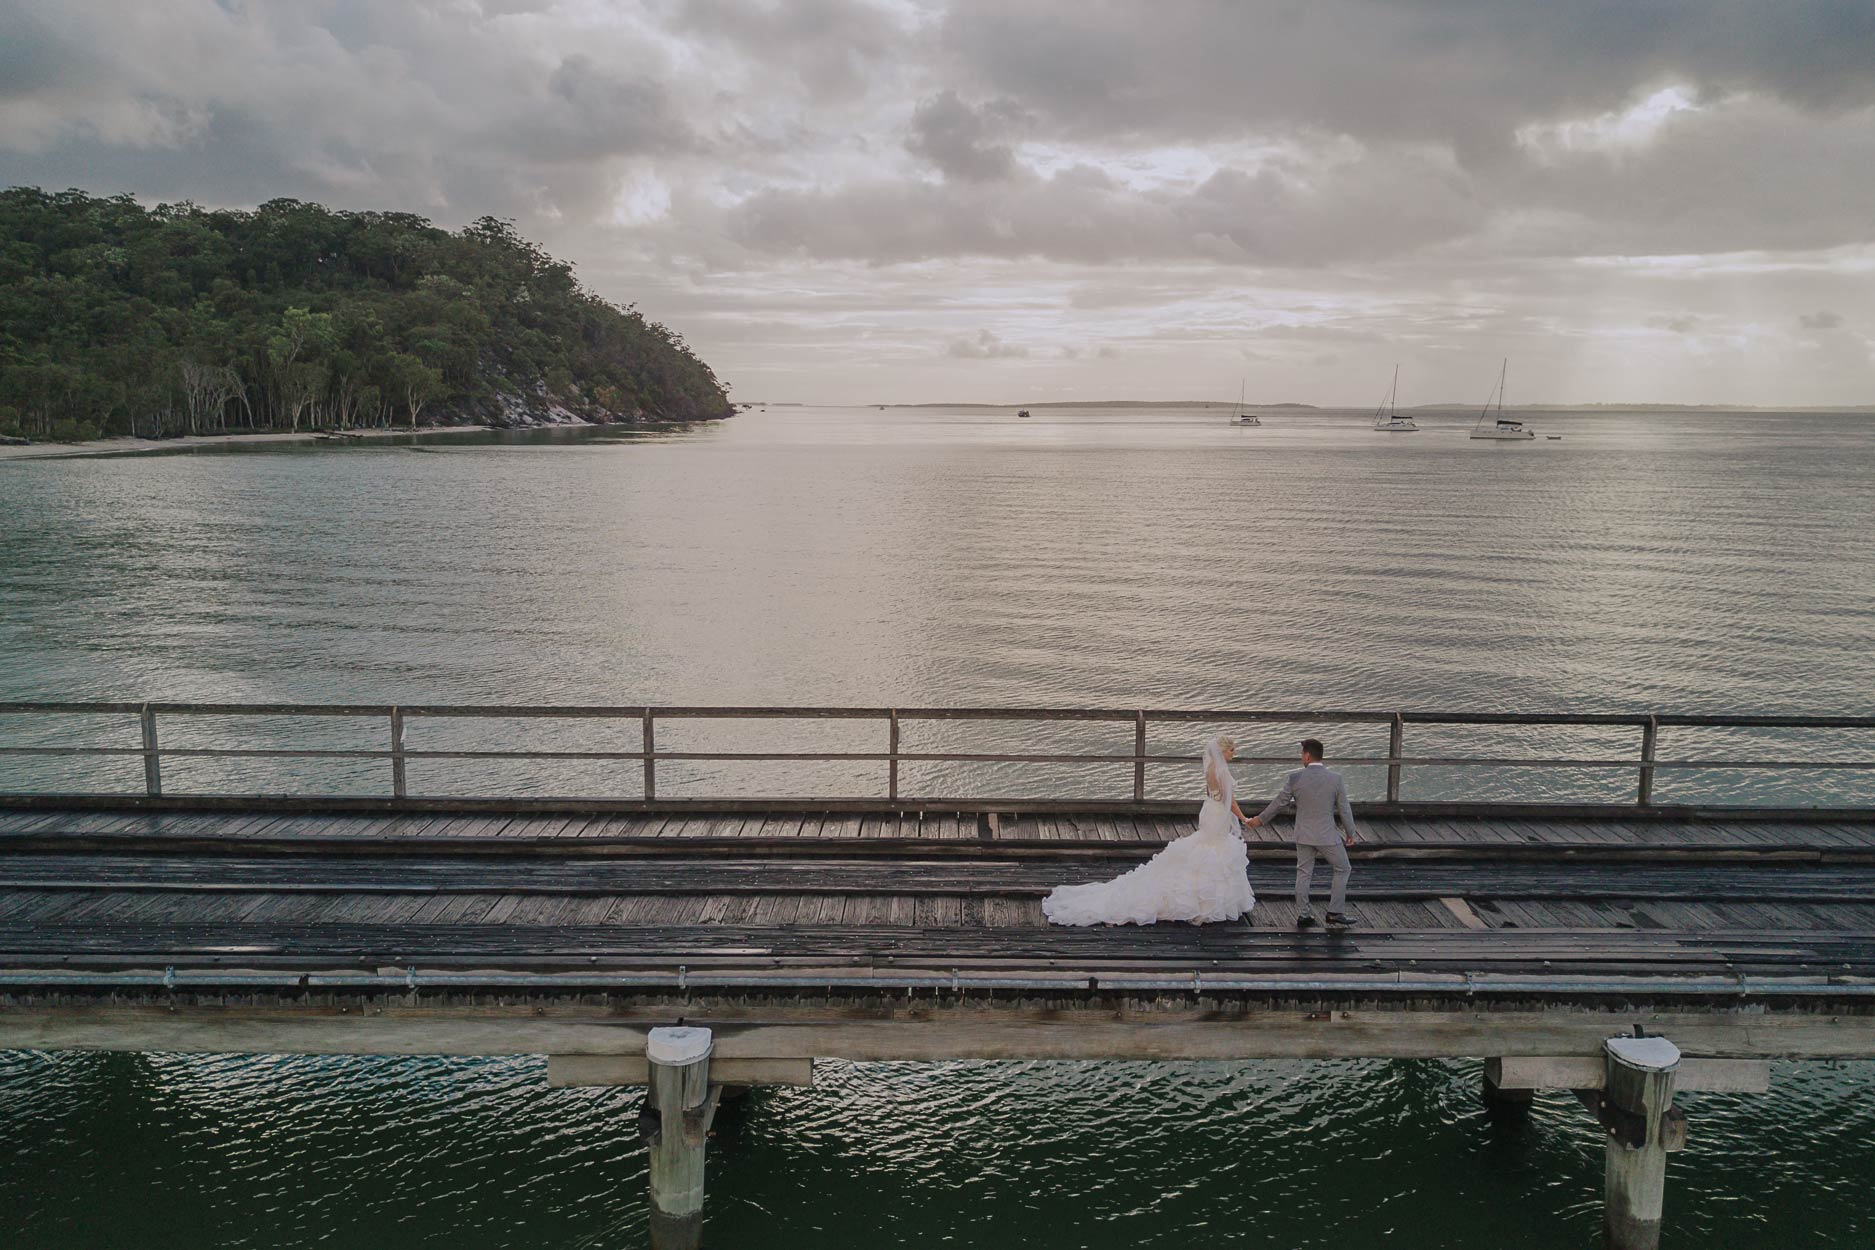 Top Noosa Heads Beach Destination Wedding - Sunshine Coast, Brisbane, Australian Drone Photographers